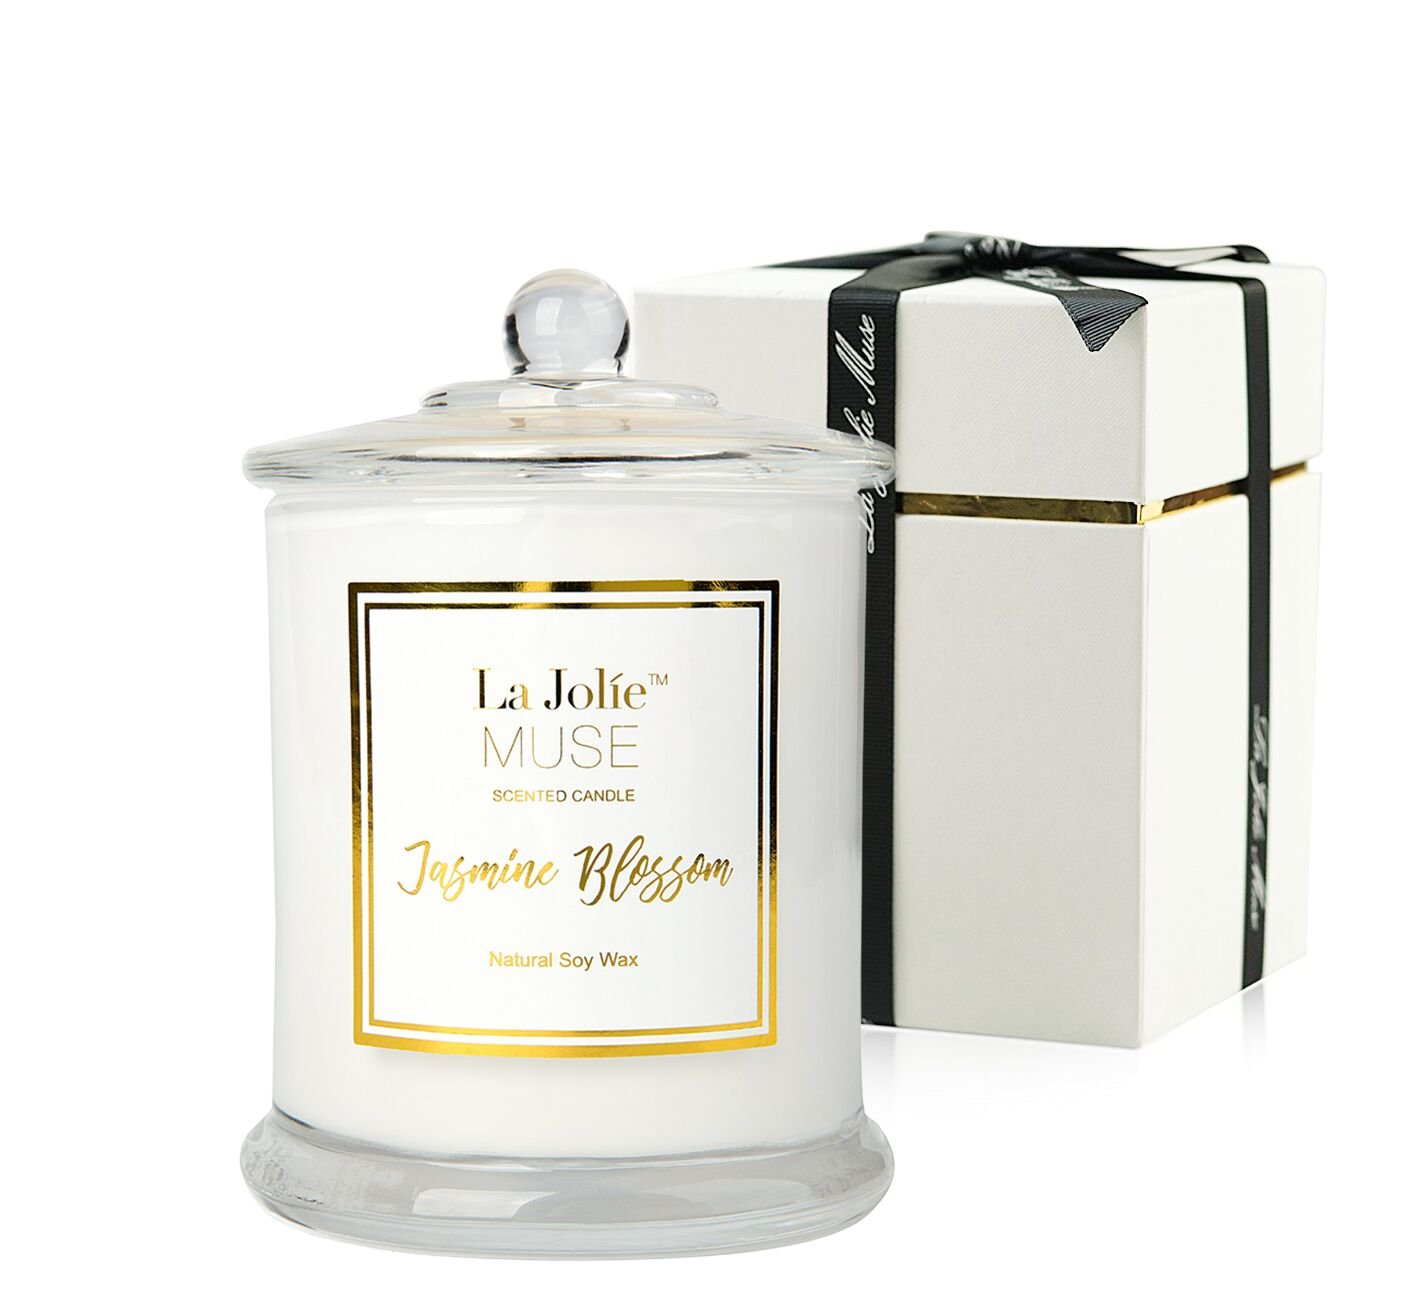 LA JOLIE MUSE Scented Candle Jasmine 100% Soy Wax in Jar Gifts Large 60 Hours